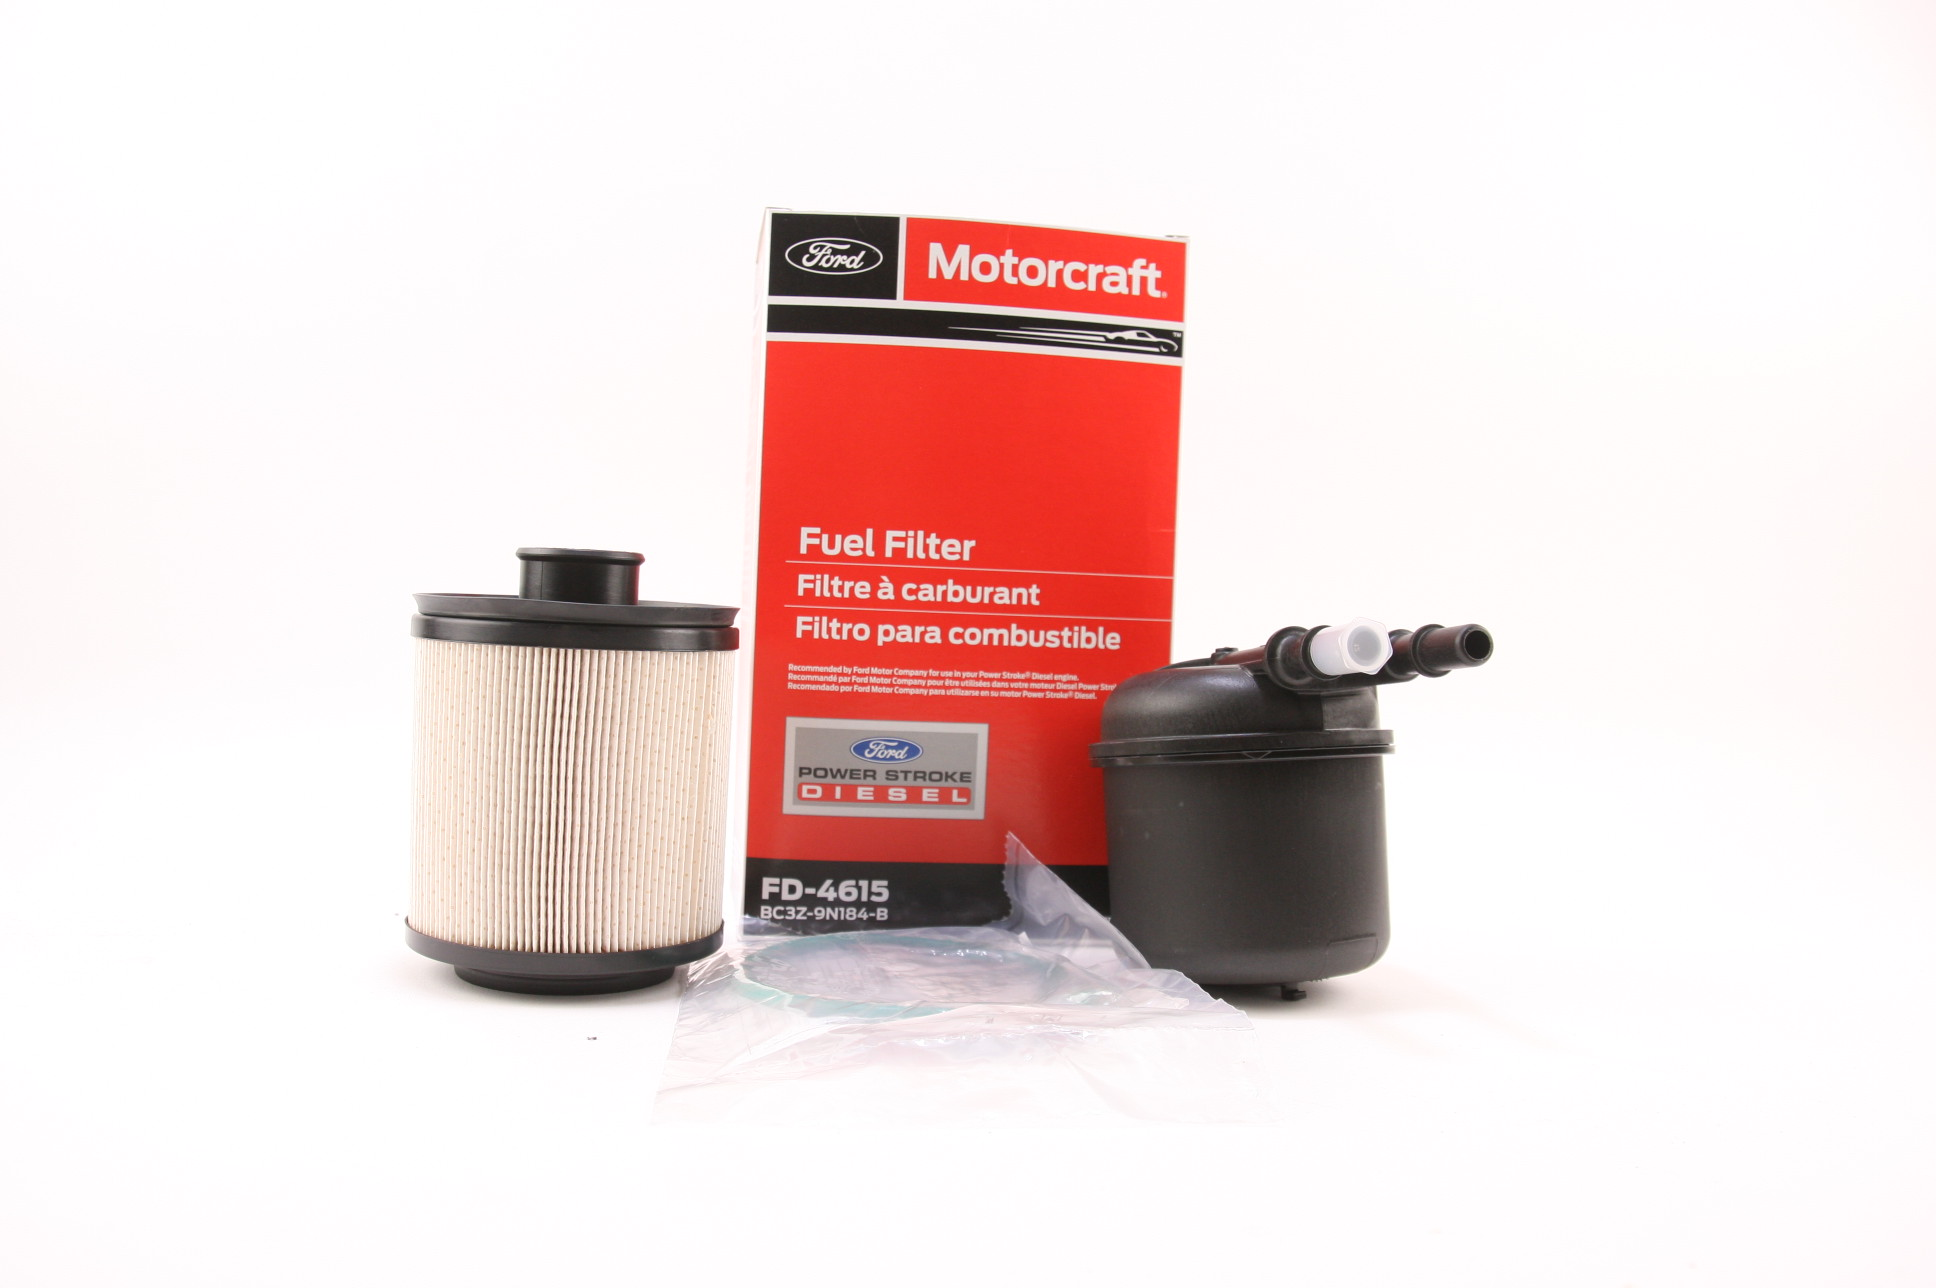 Browse Inventory Ford Fuel Filters New Oem Motorcraft Fd 4615 Filter 11 13 67l Diesel F250 F350 F450 F550